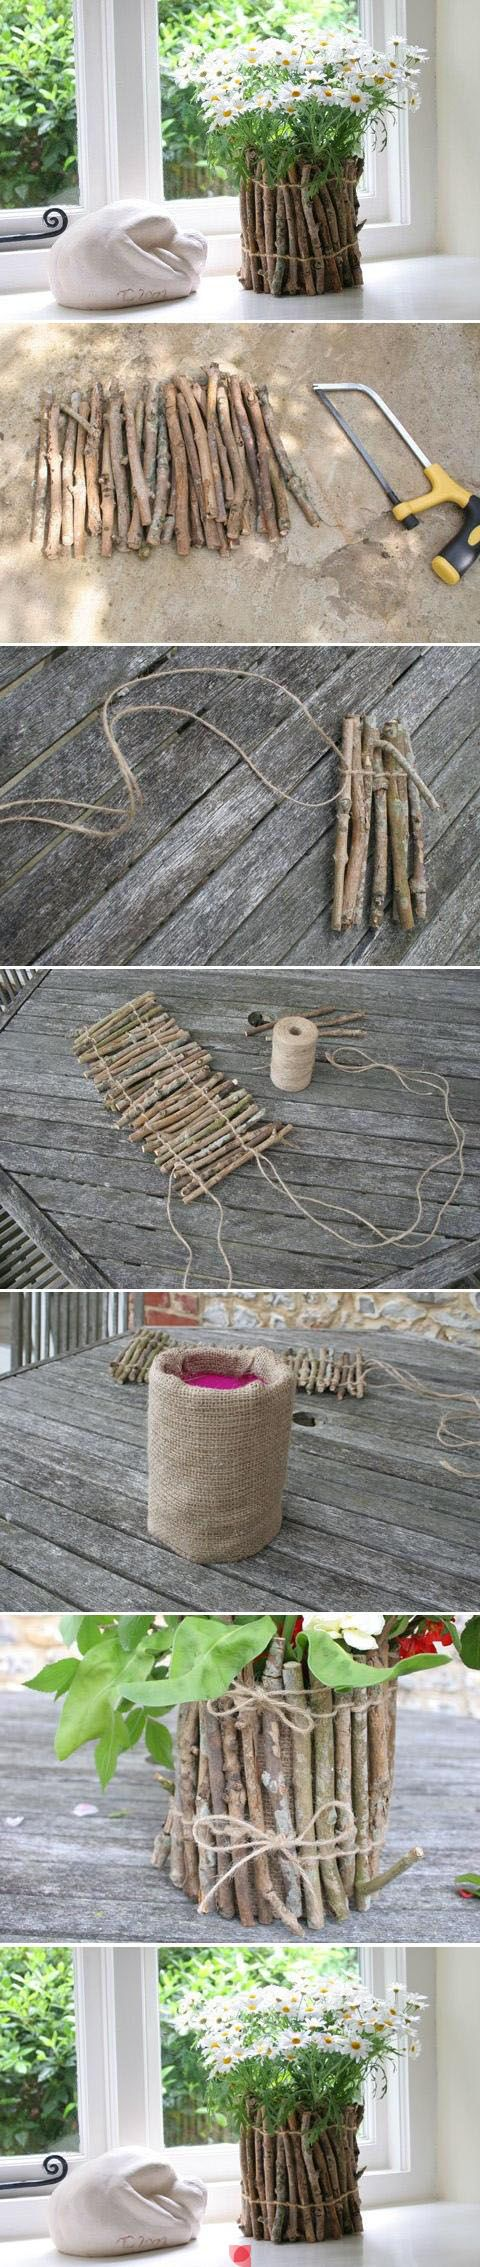 DIY - twig cover for a coffee can vase. Recycle/upcycle